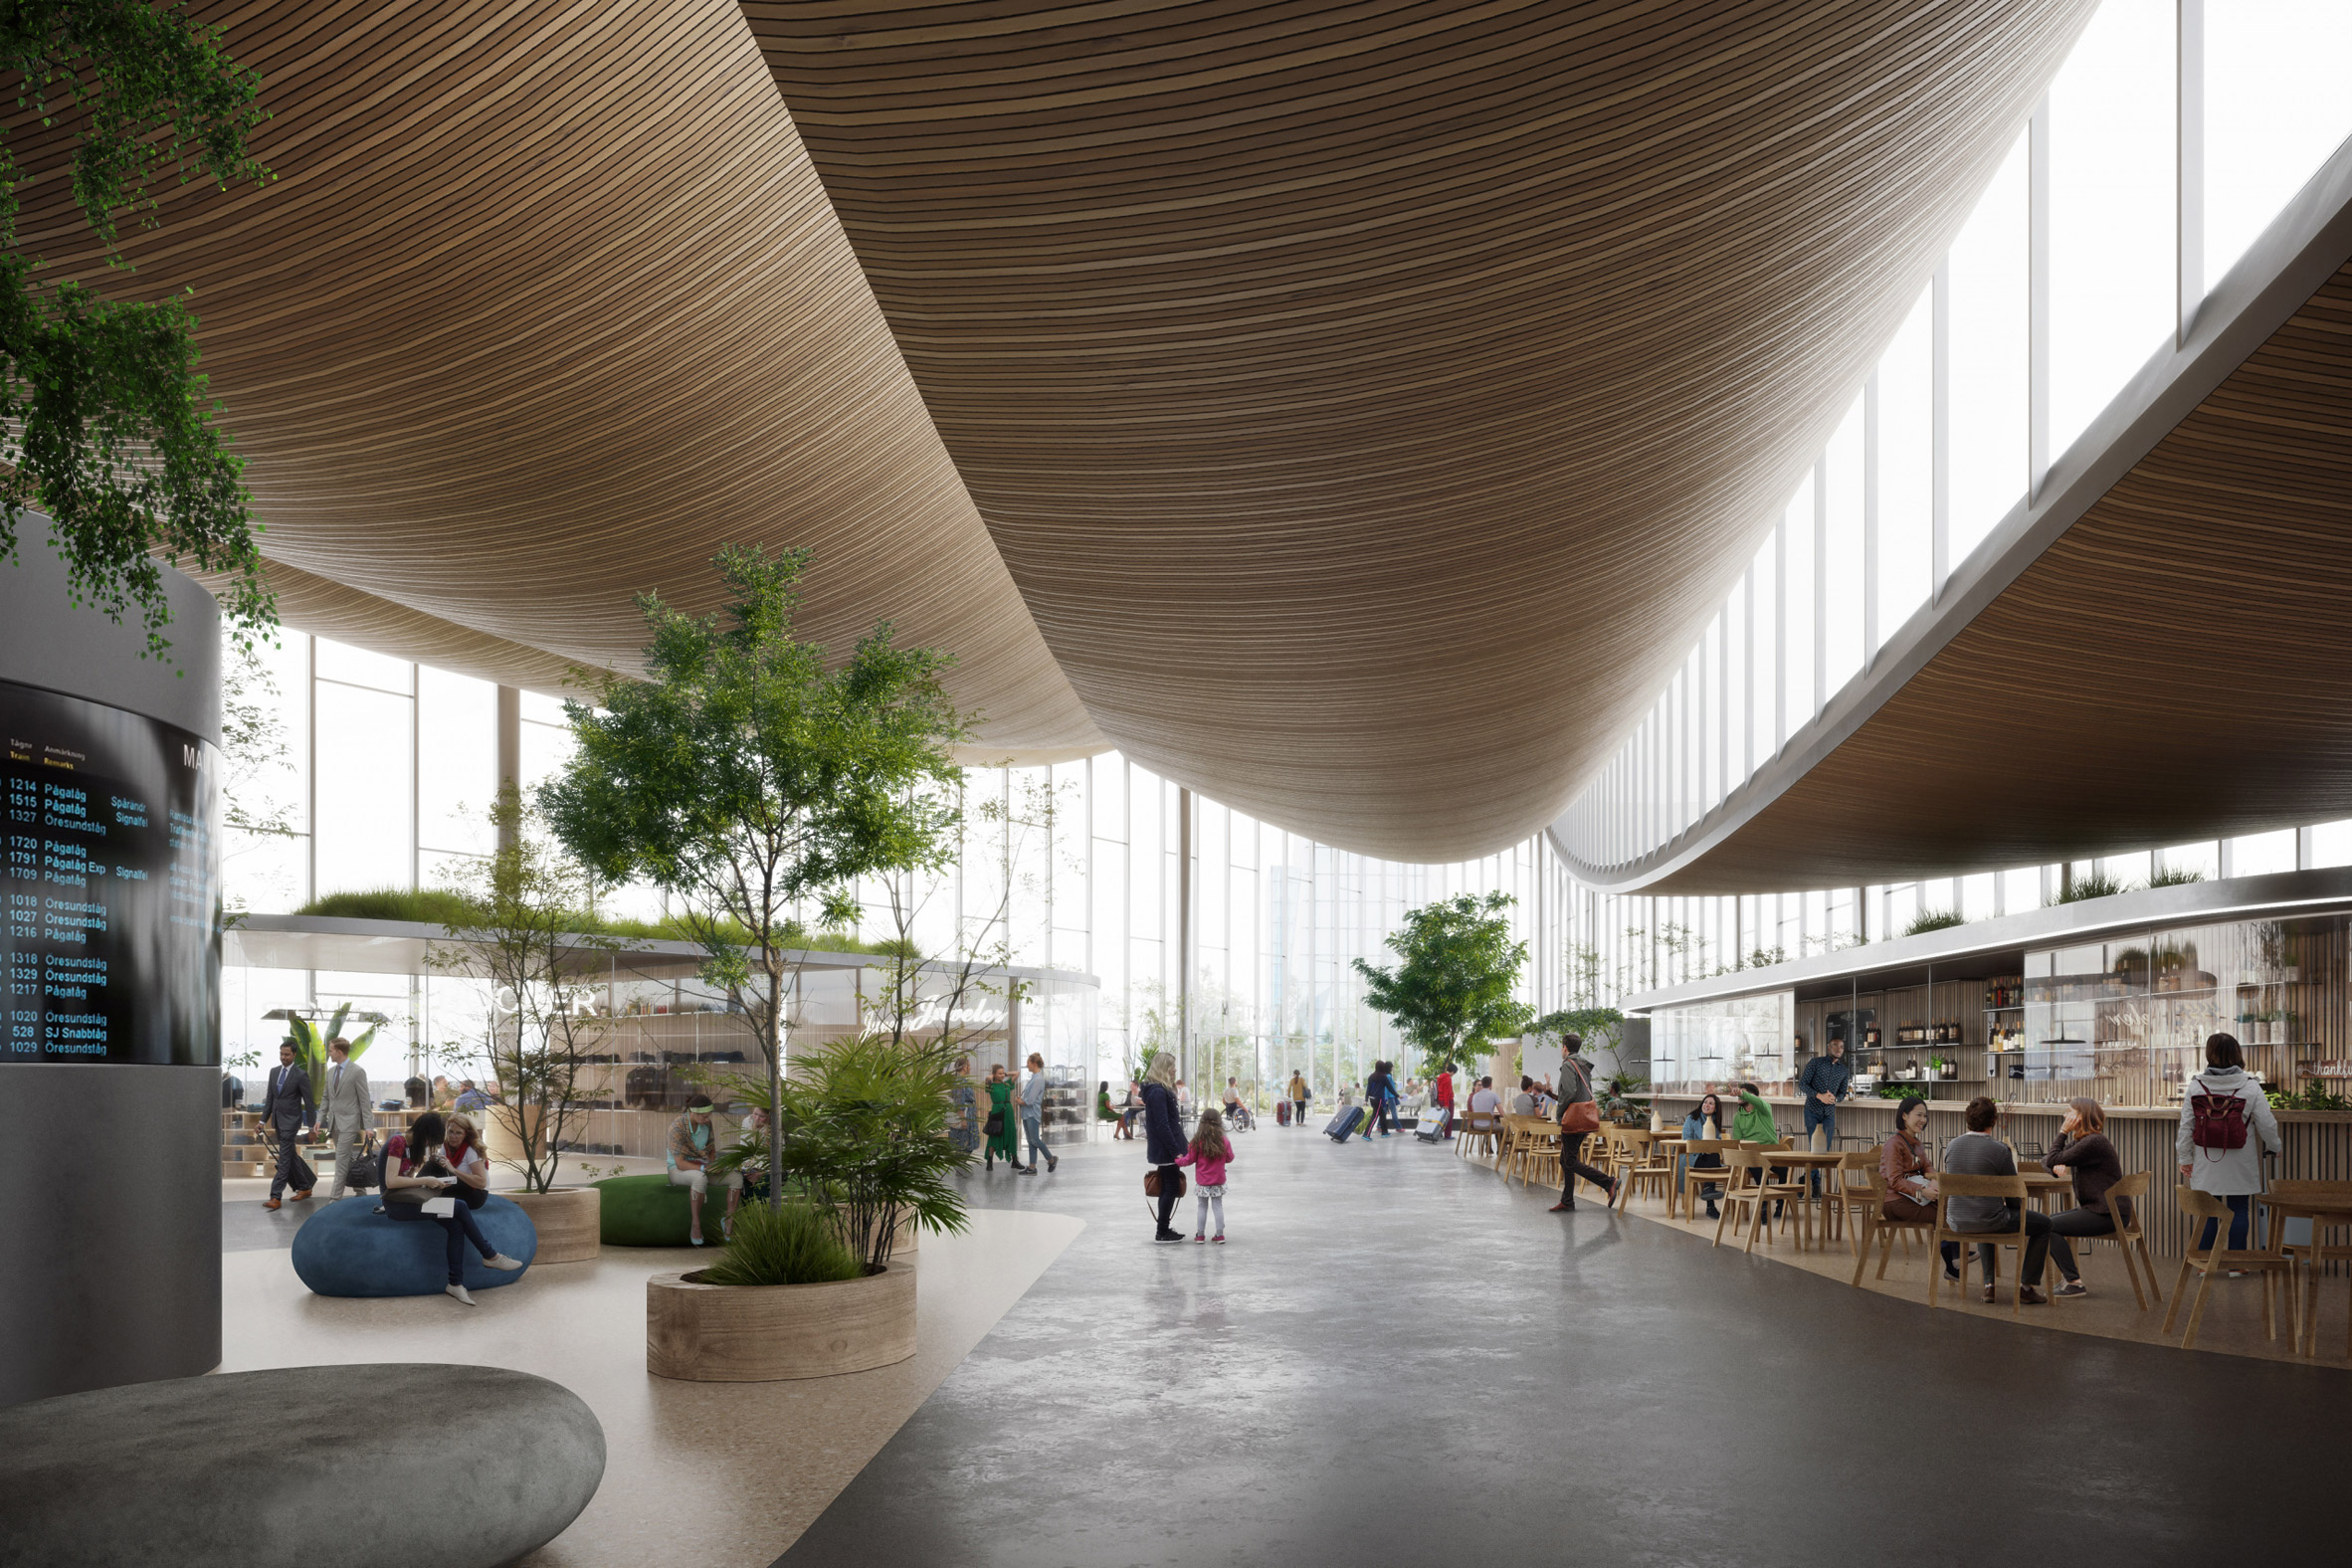 Render of sweeping ceiling made of wooden slats